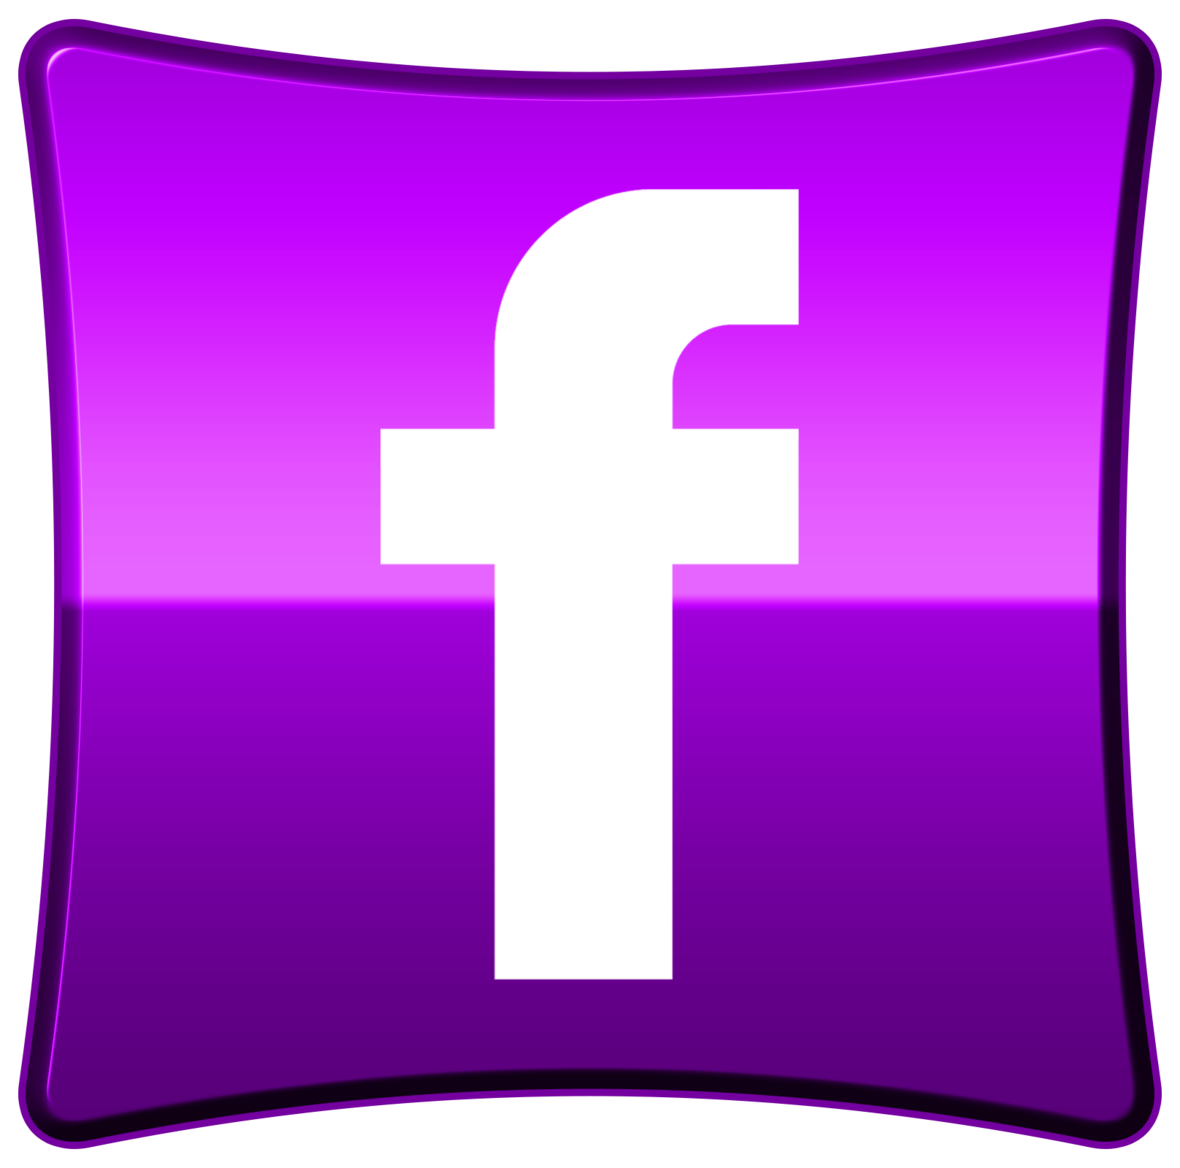 PurpleFaceBookButton